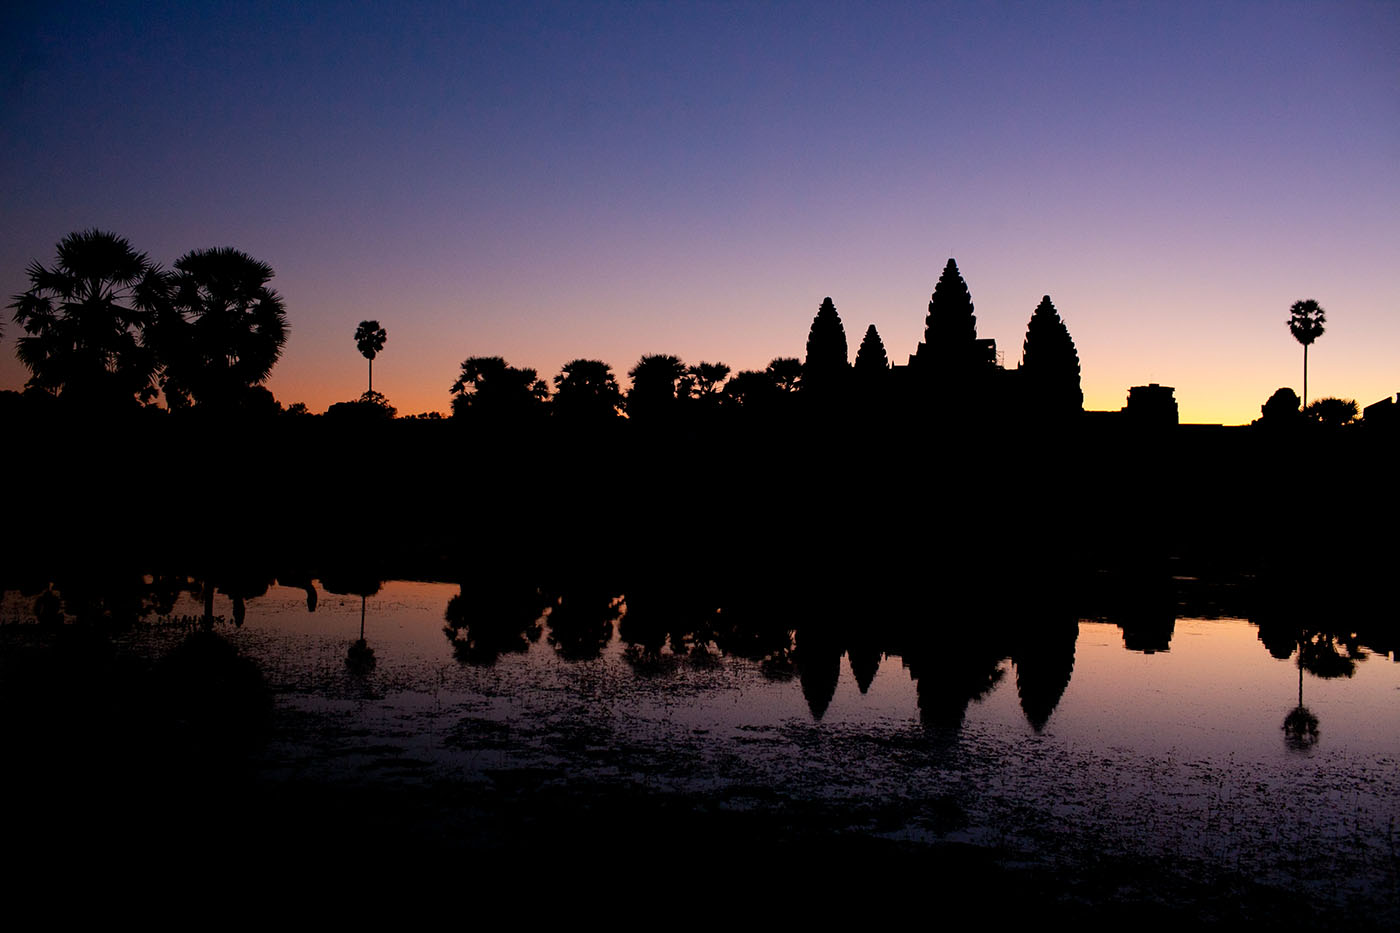 Exploring the temples of Angkor Wat and all the Khmer temples in Cambodia.